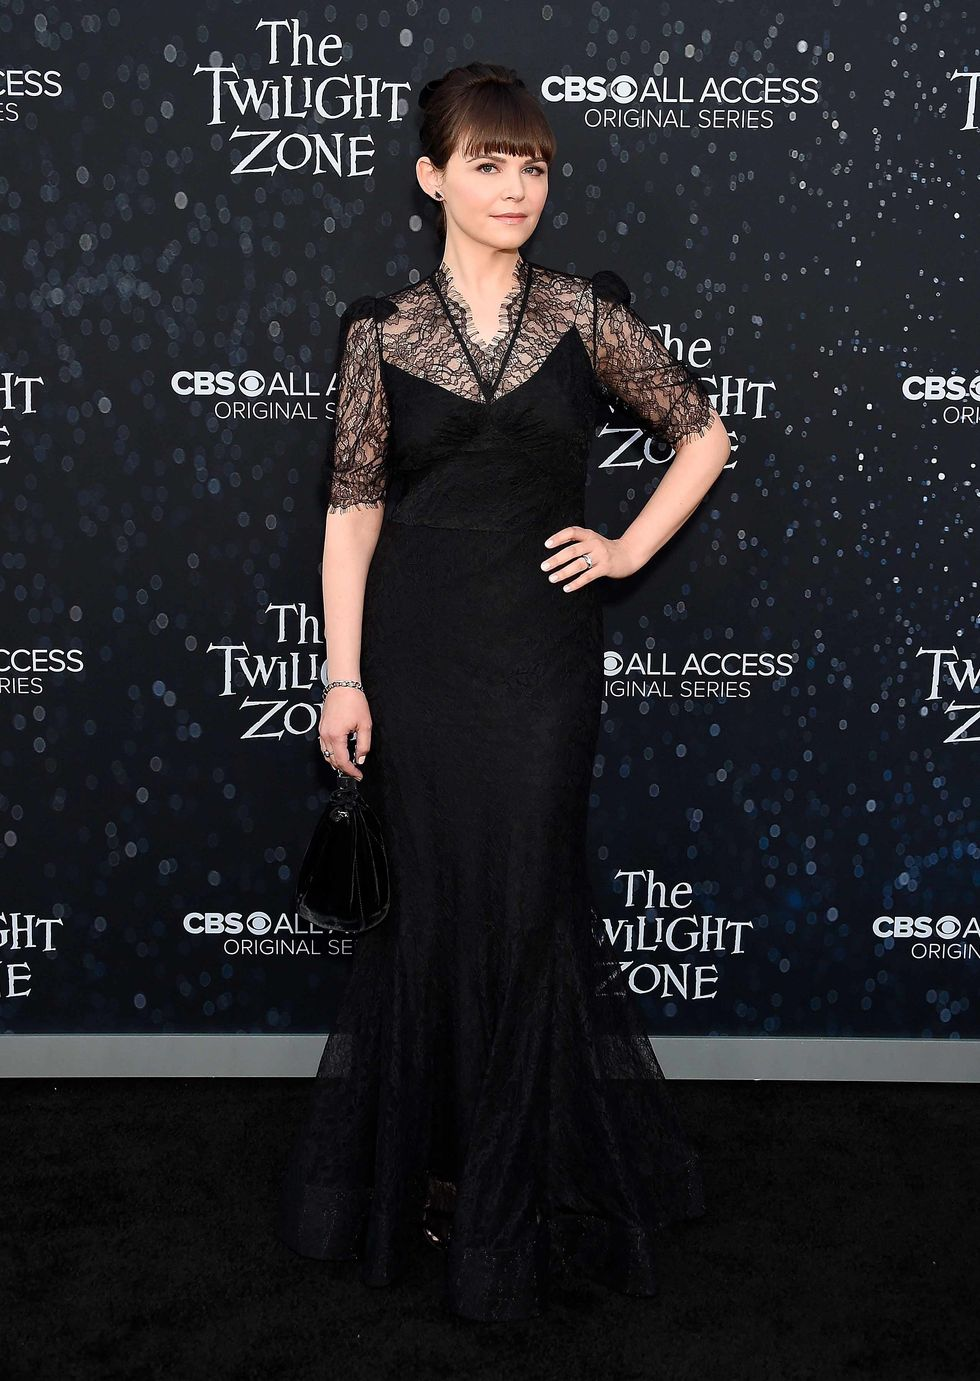 Ginnifer Goodwin in a black lace gown.